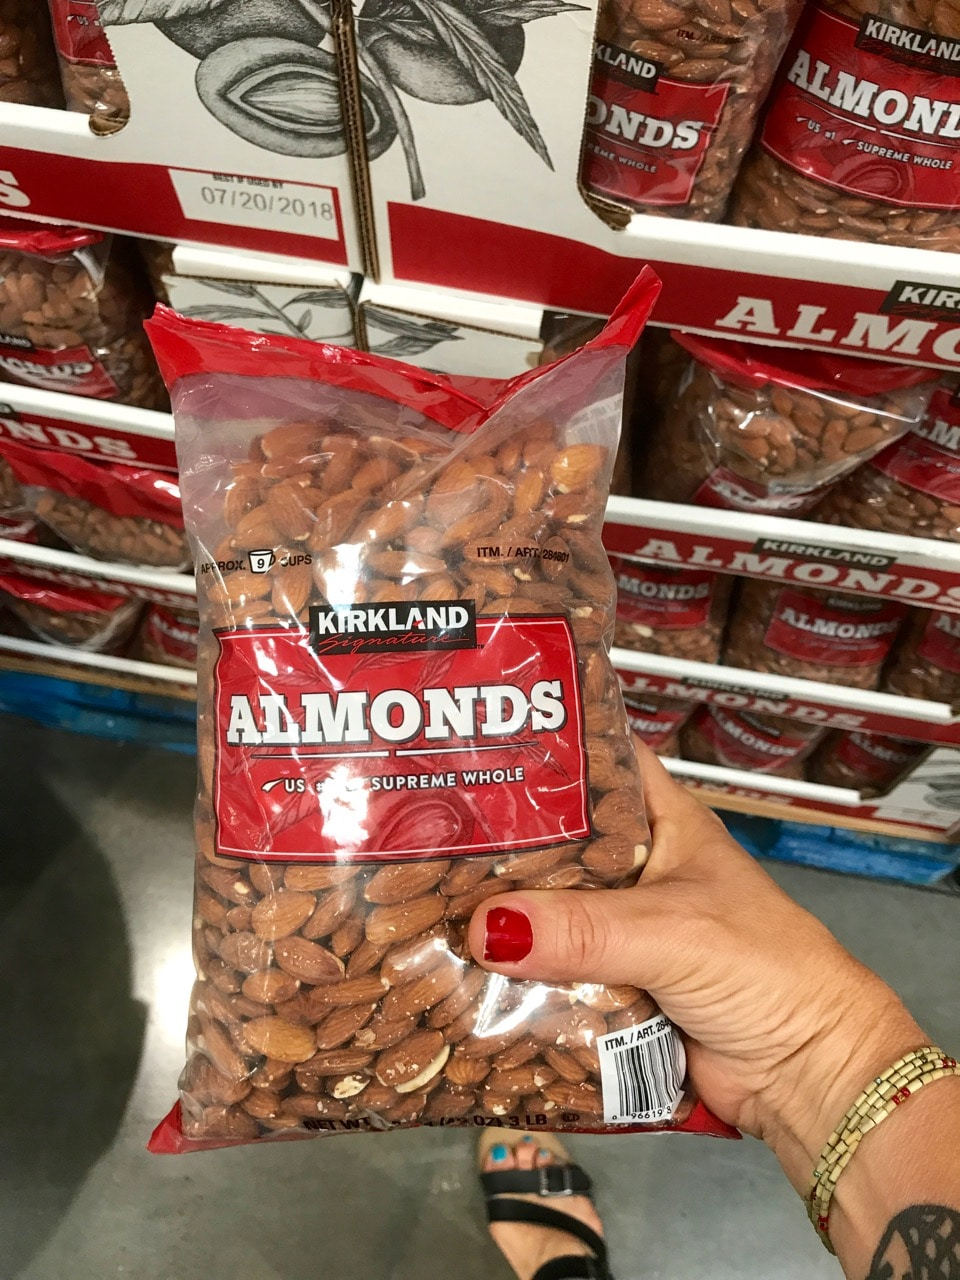 Kirkland Almonds are on of my 36 Favorite Vegan Products from Costco